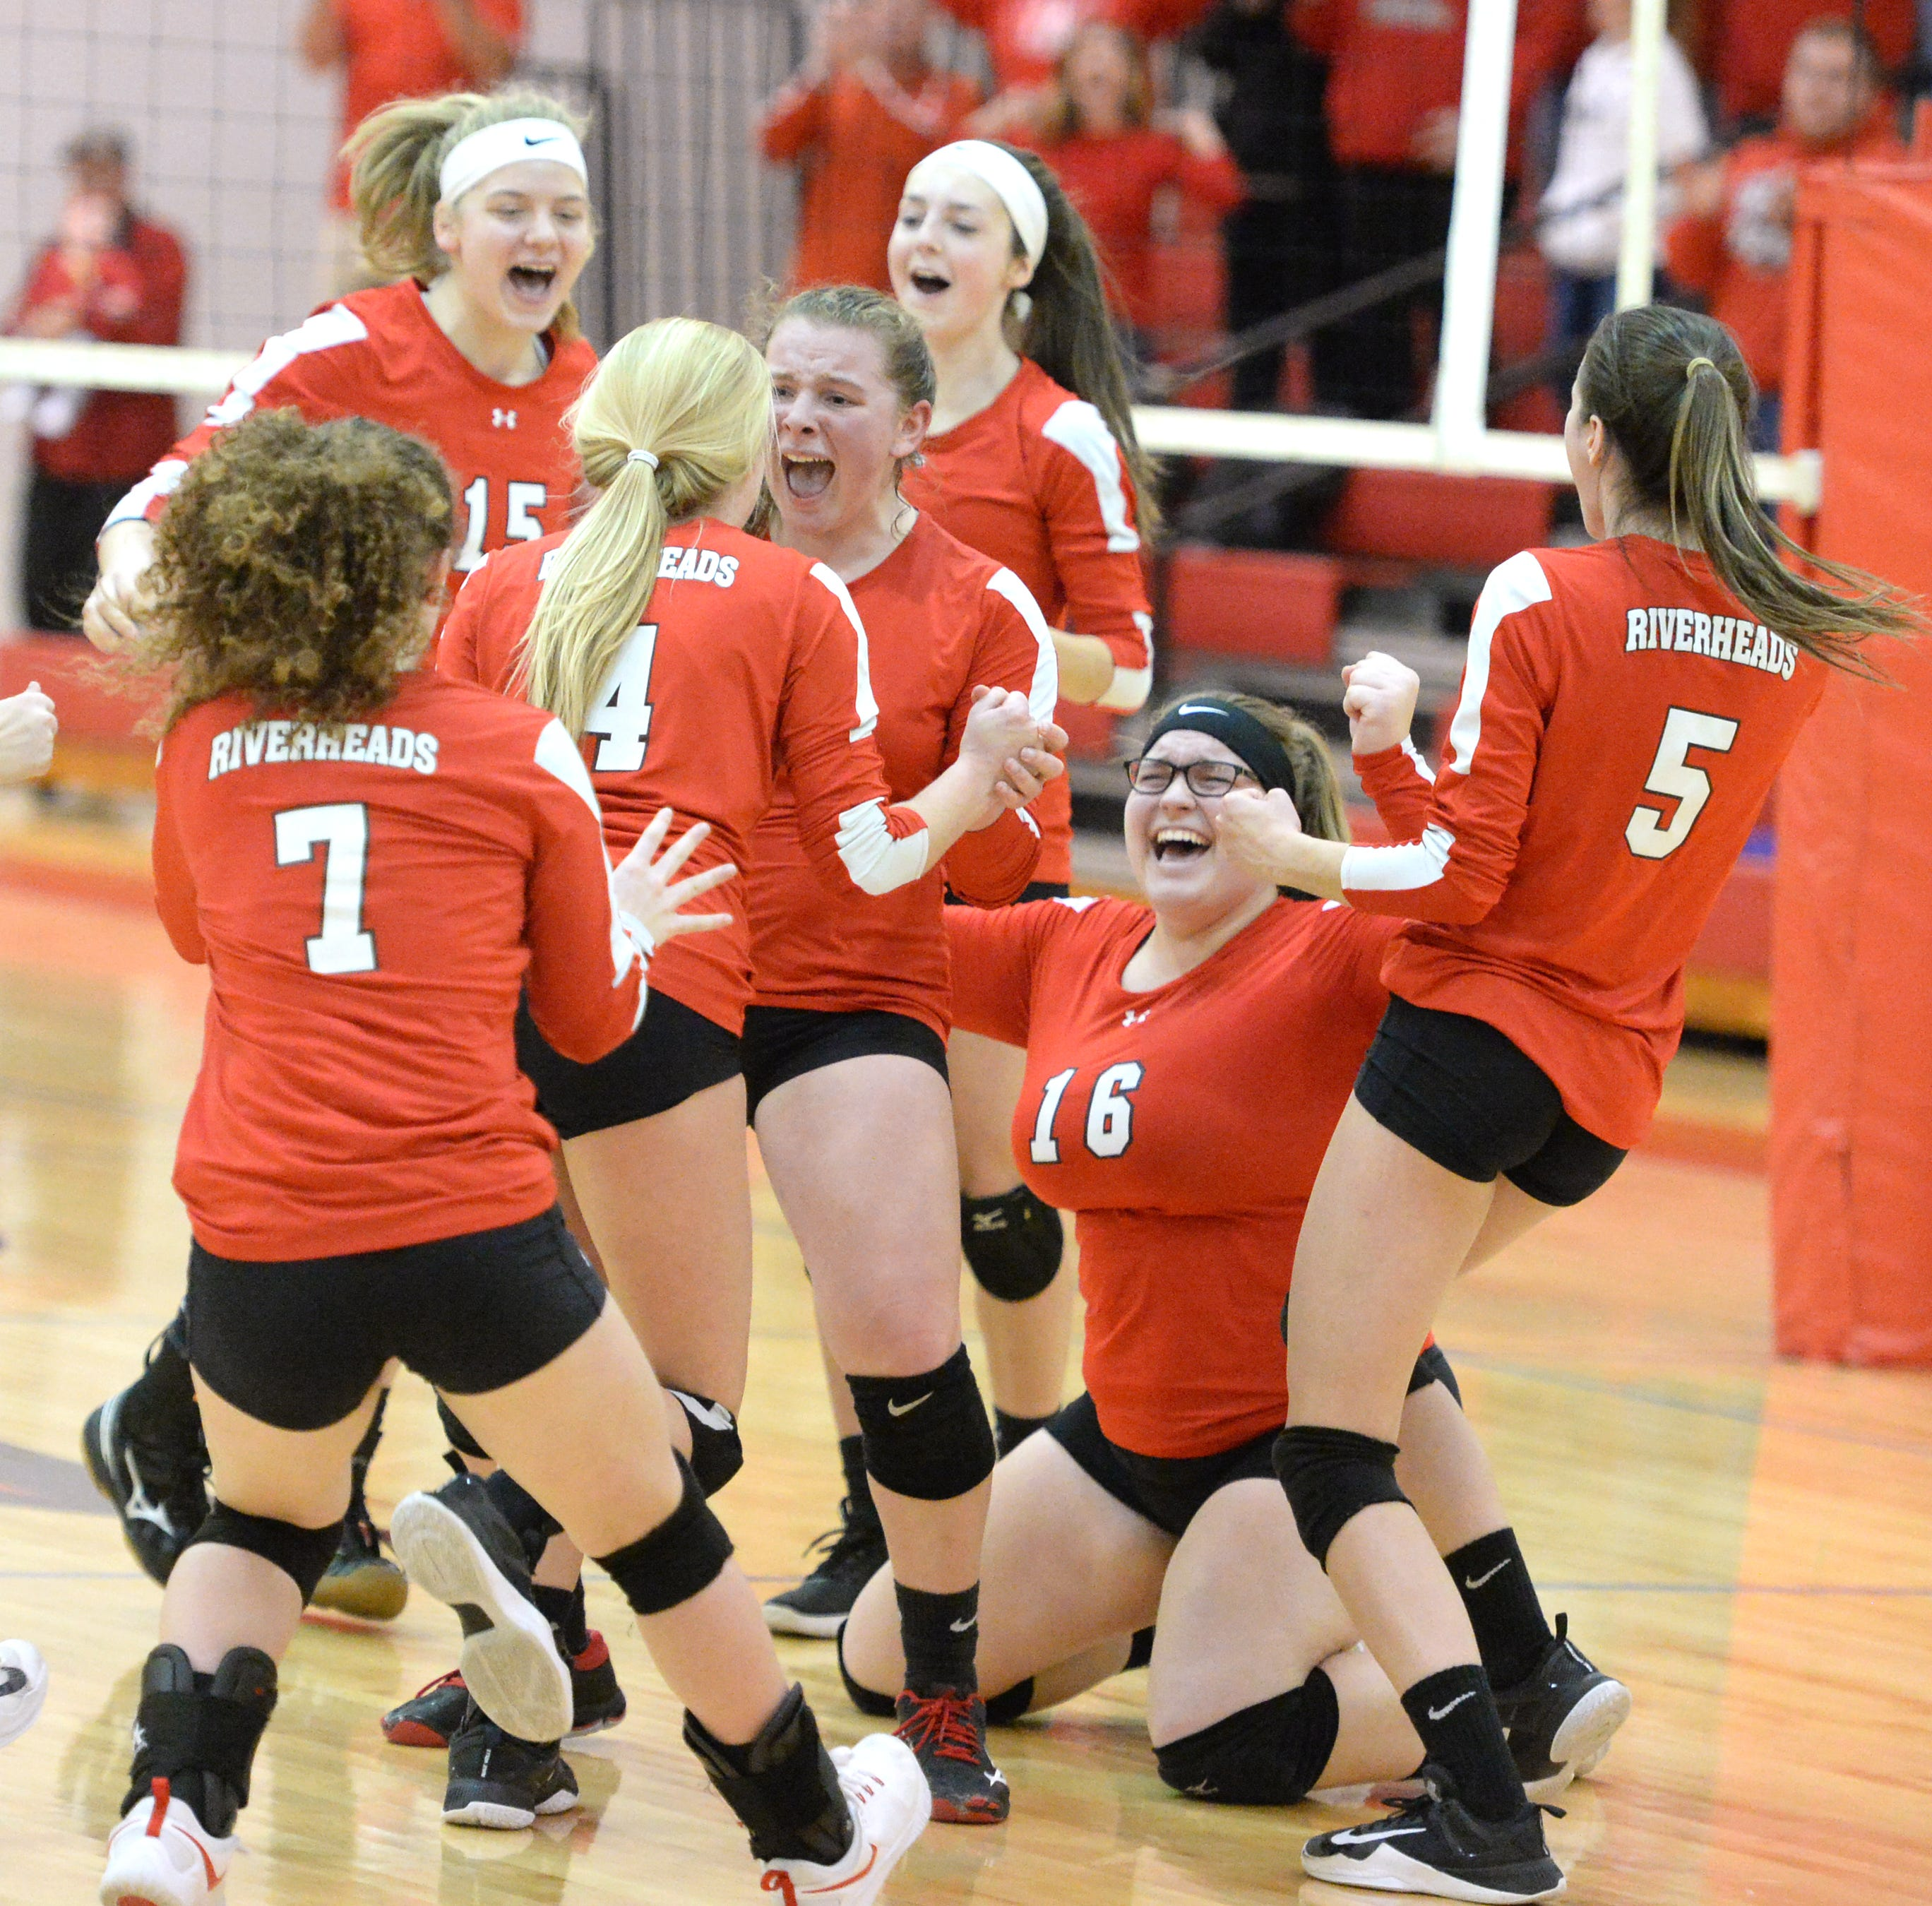 Riverheads advances to state volleyball semifinals